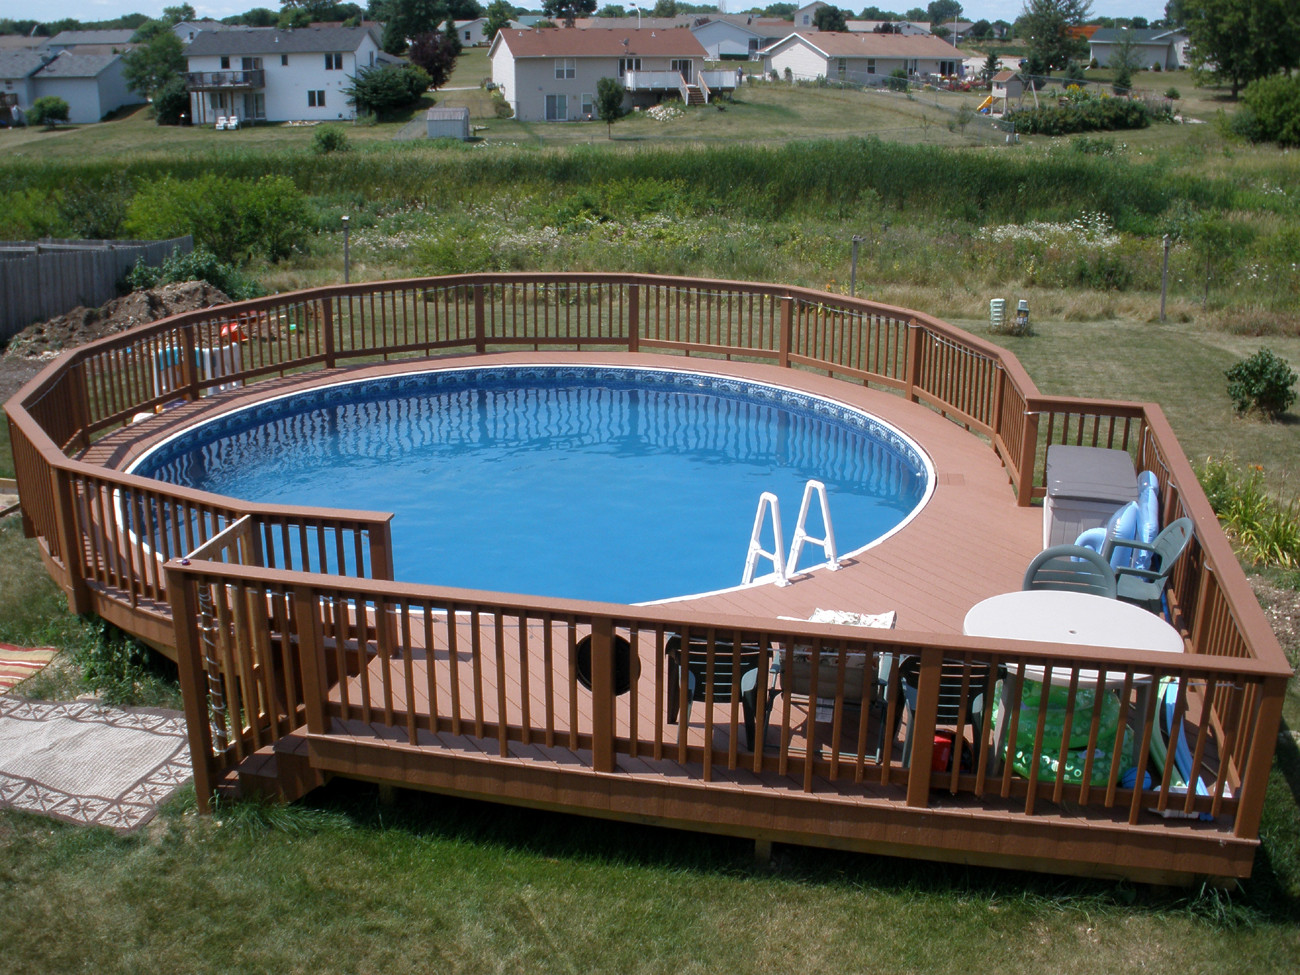 Best ideas about Free Above Ground Pool Deck Plans . Save or Pin Ideas of Ground Pool Deck Plans Now.